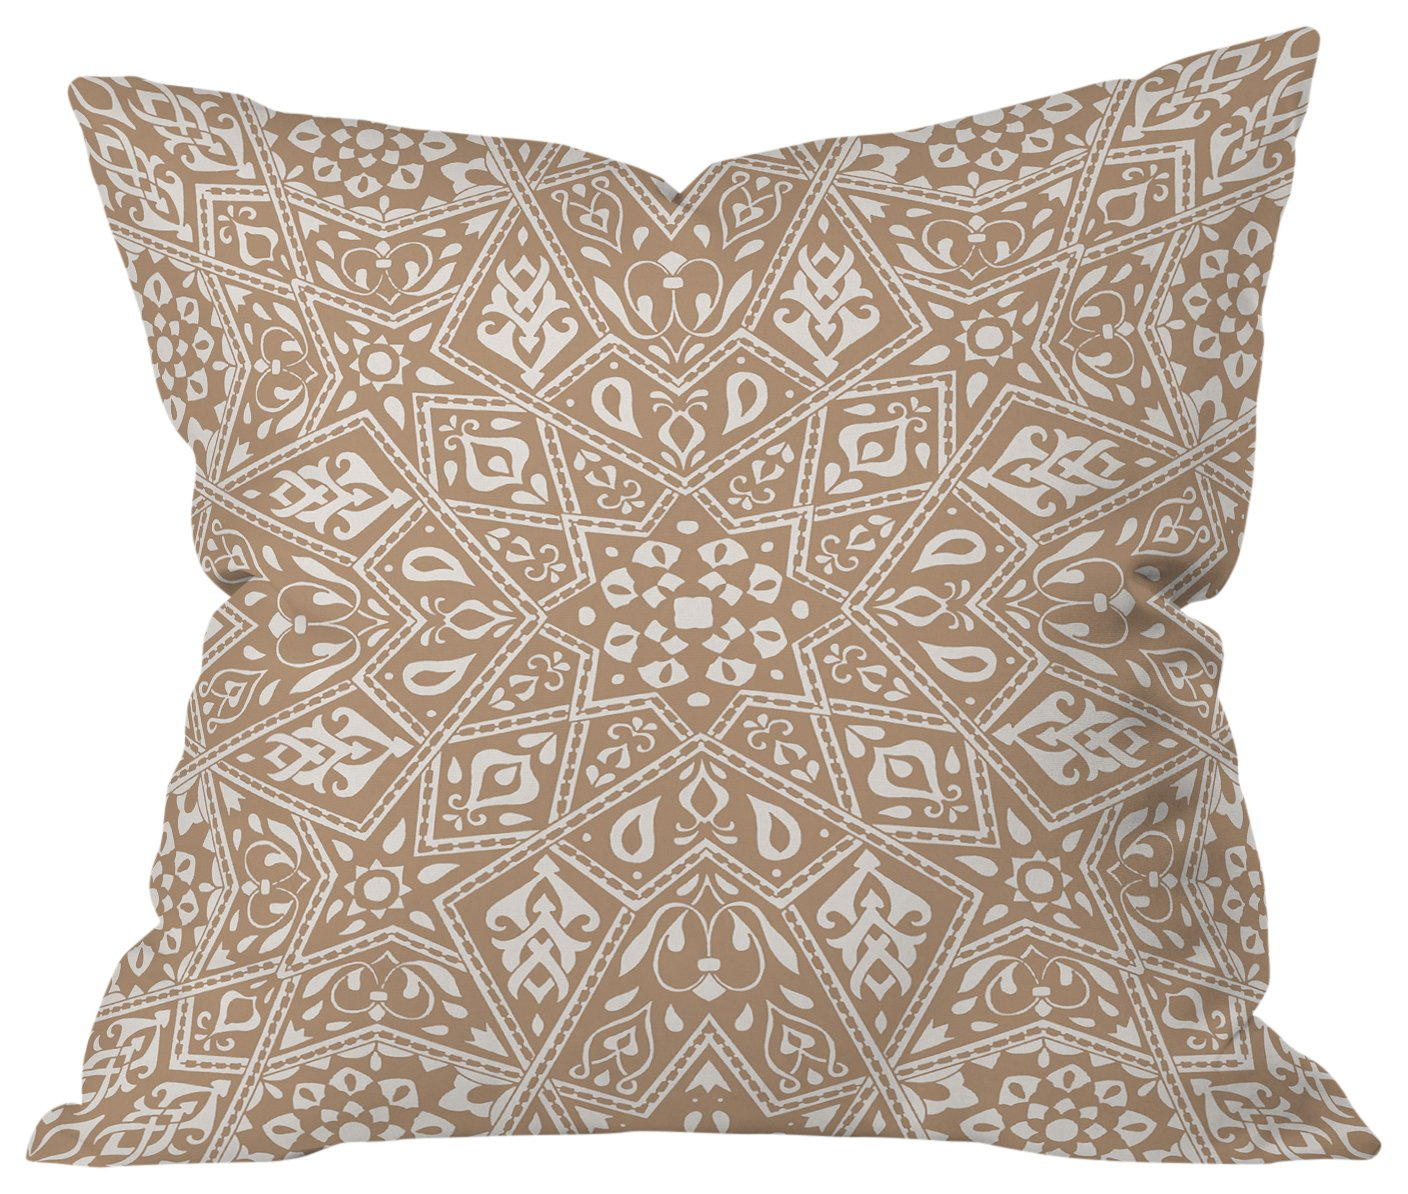 Deny Designs Aimee St Hill Ogee Orange Outdoor Throw Pillow 20 x 20